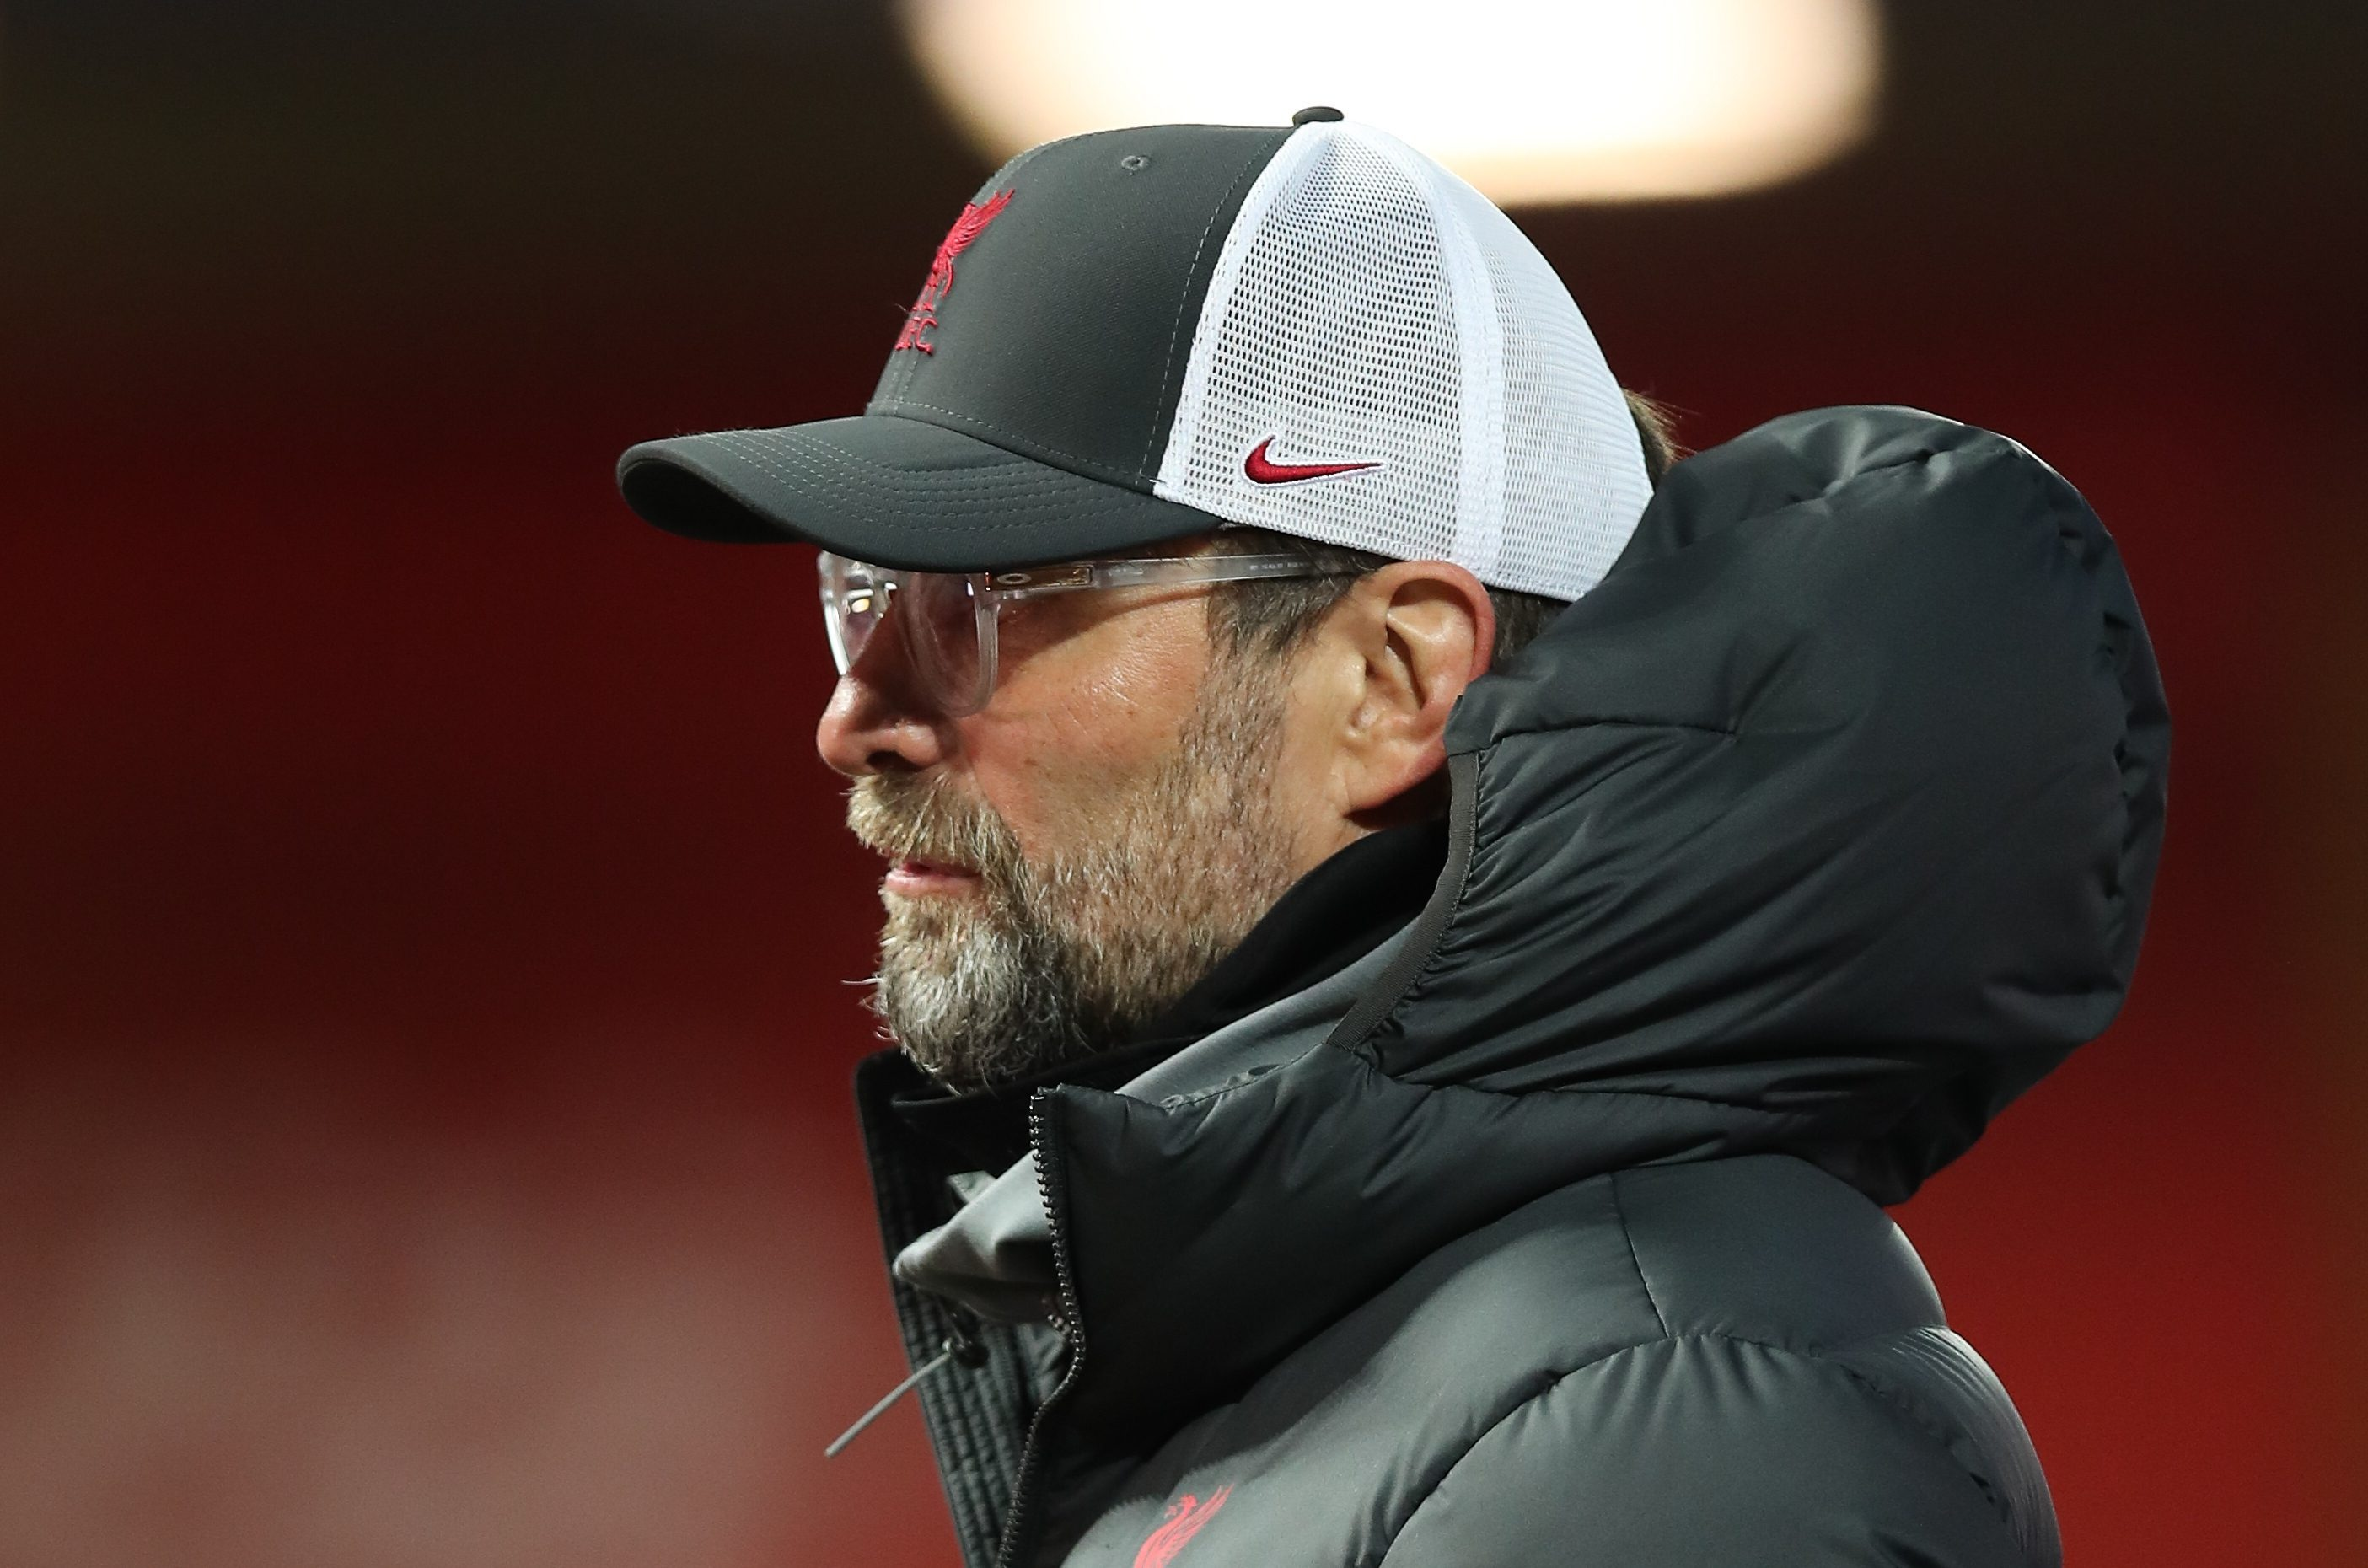 Jurgen Klopp has been Liverpool manager since 2015 – do fans think his time is nearing an end?